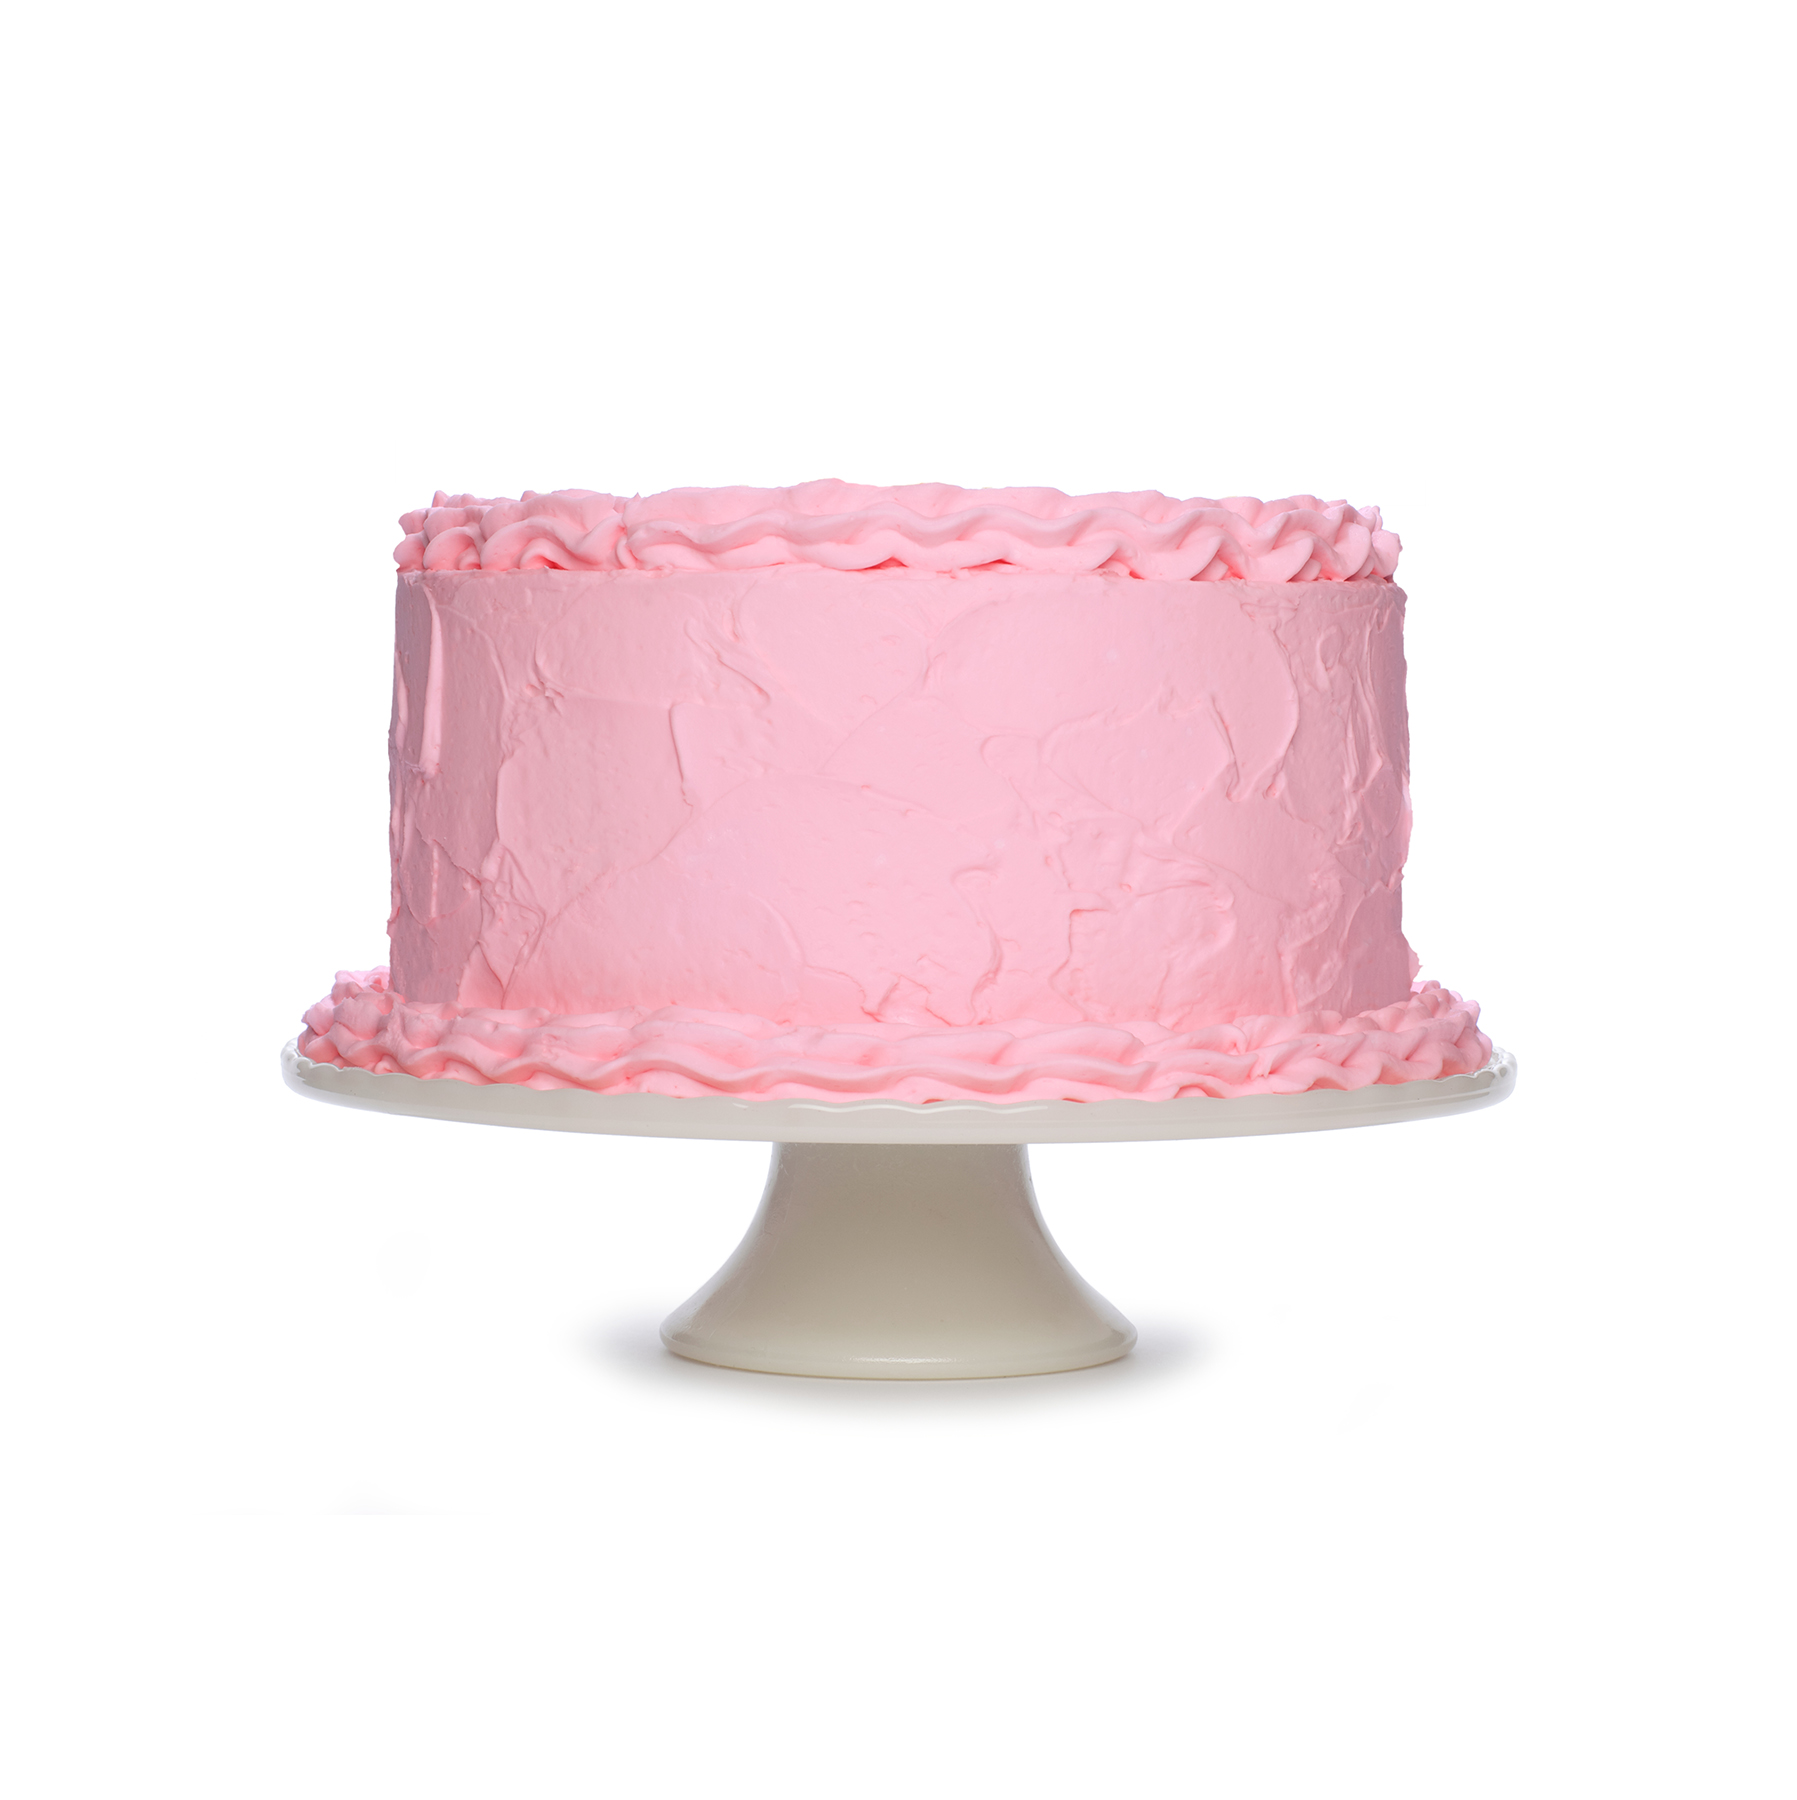 Cake with pink frosting